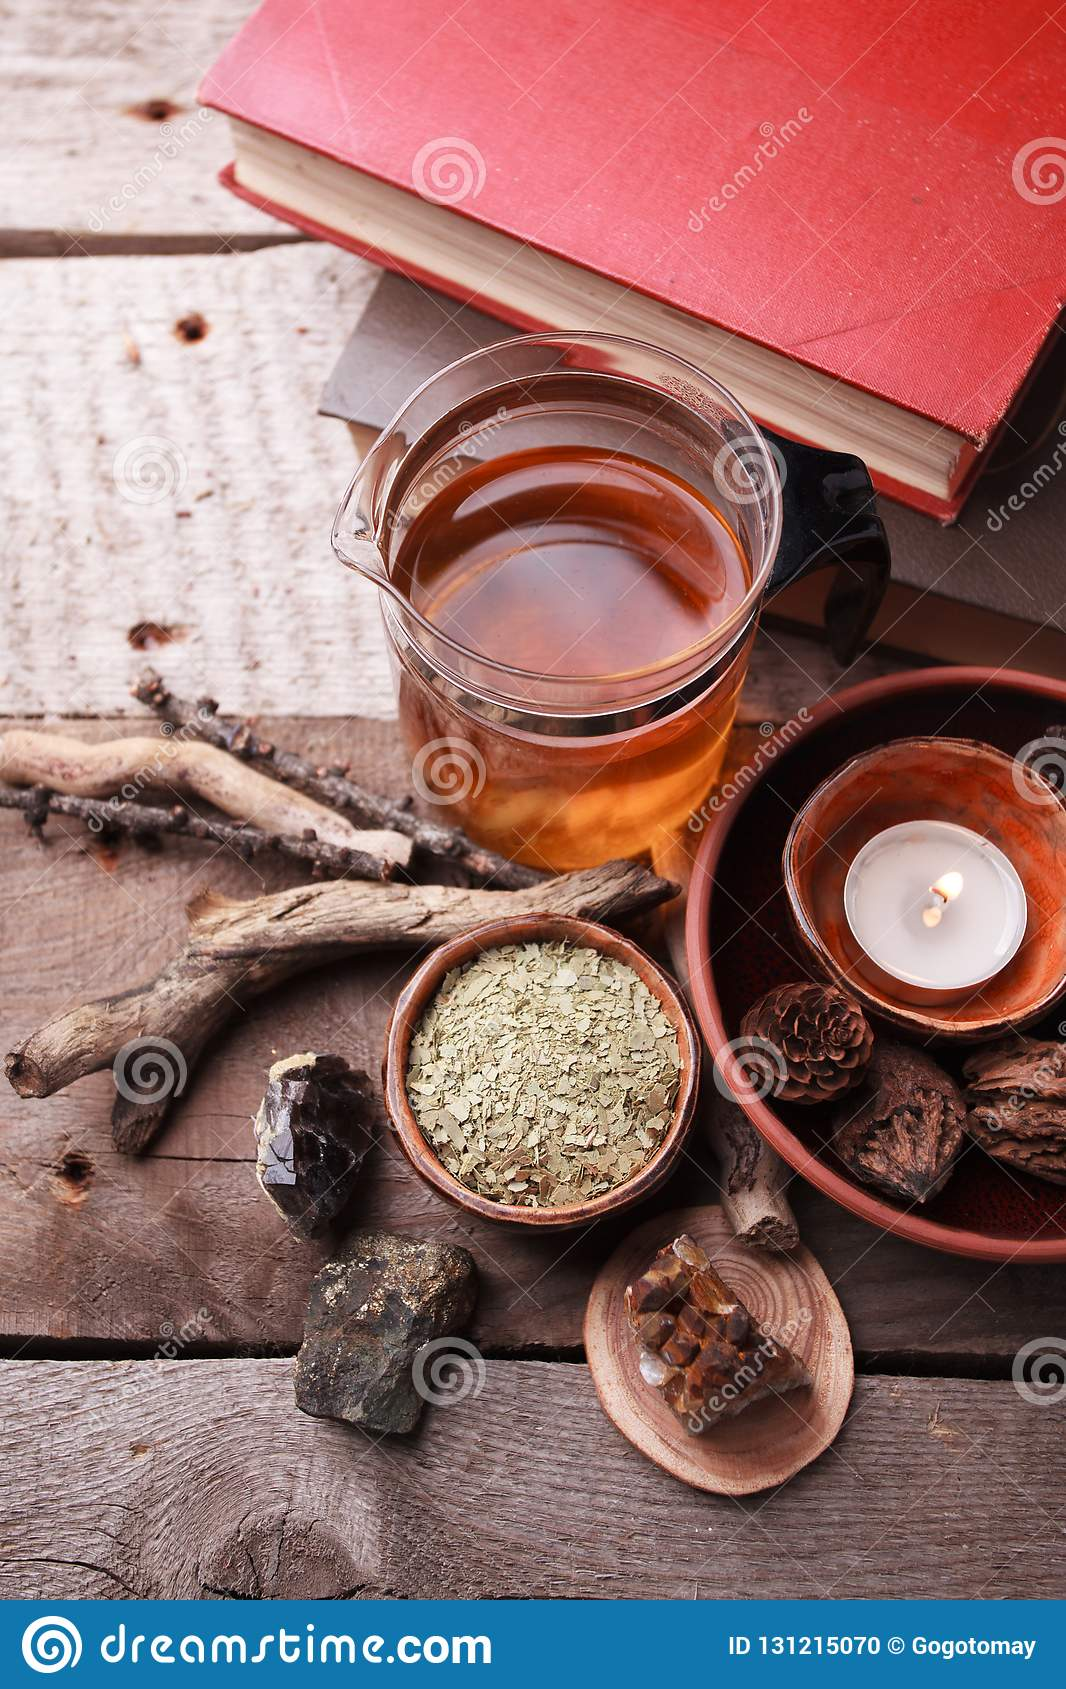 Authentic interior details, glass of herbal rea, dry herbal plants, homeopathic treatment on rustic wooden background, alternative